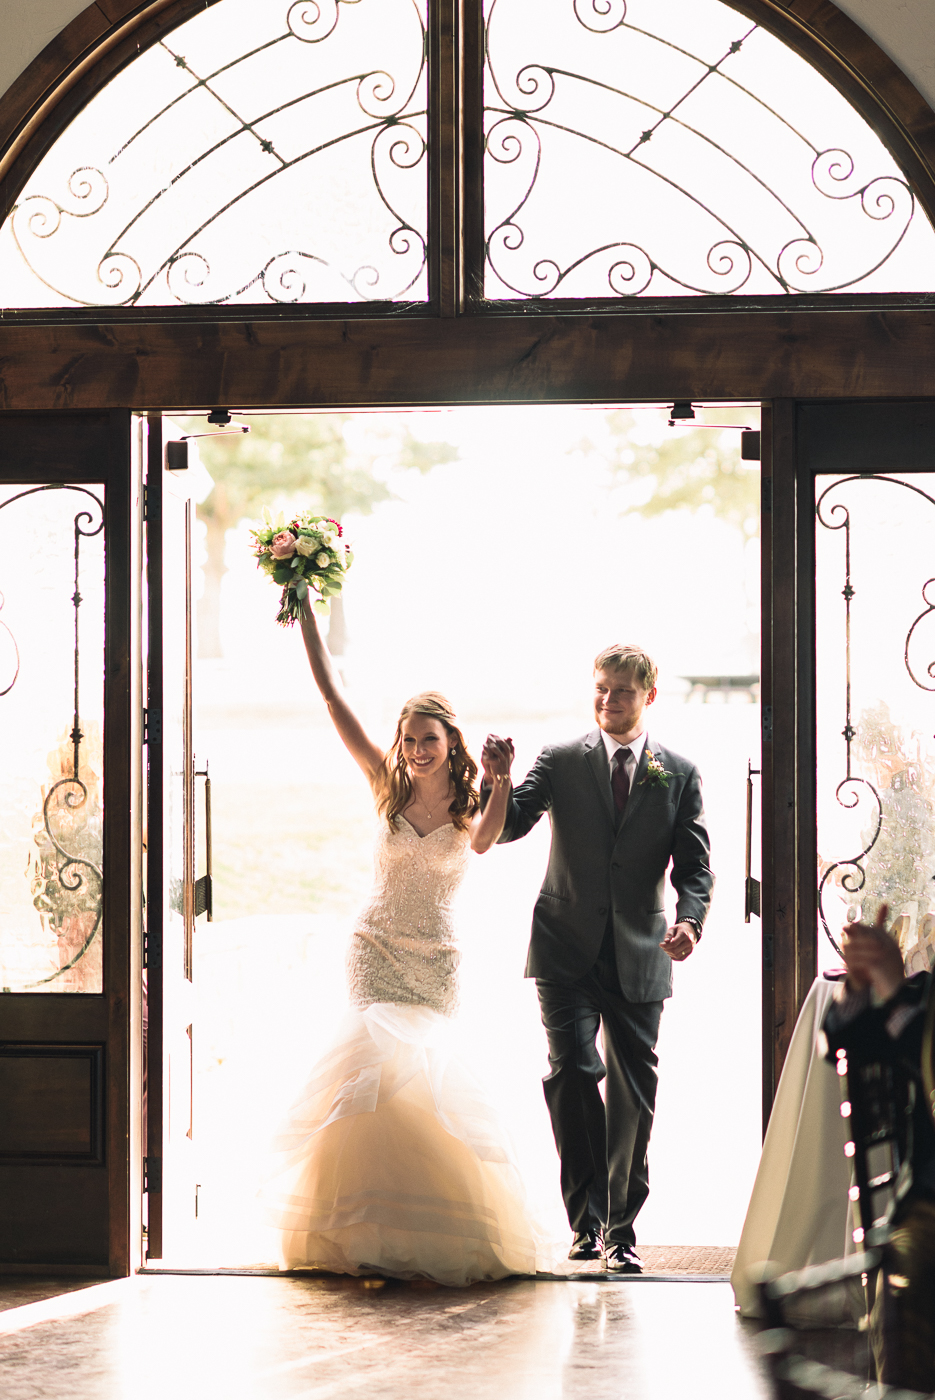 grand entrance wedding newlyweds bride and groom celebration